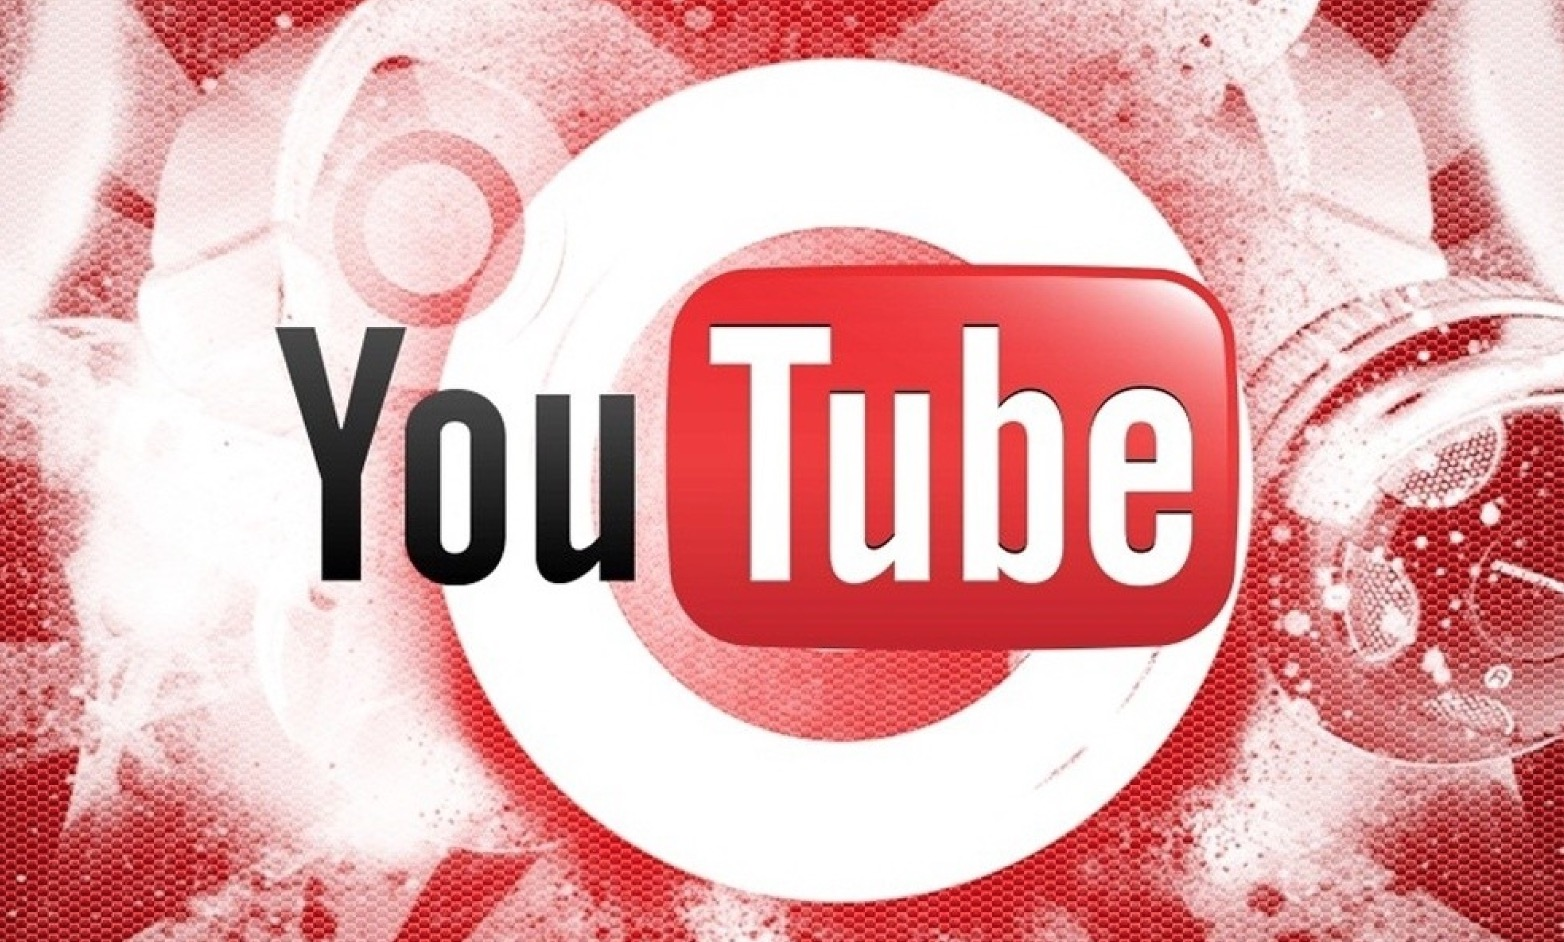 Scaricare musica da YouTube su Android e iPhone